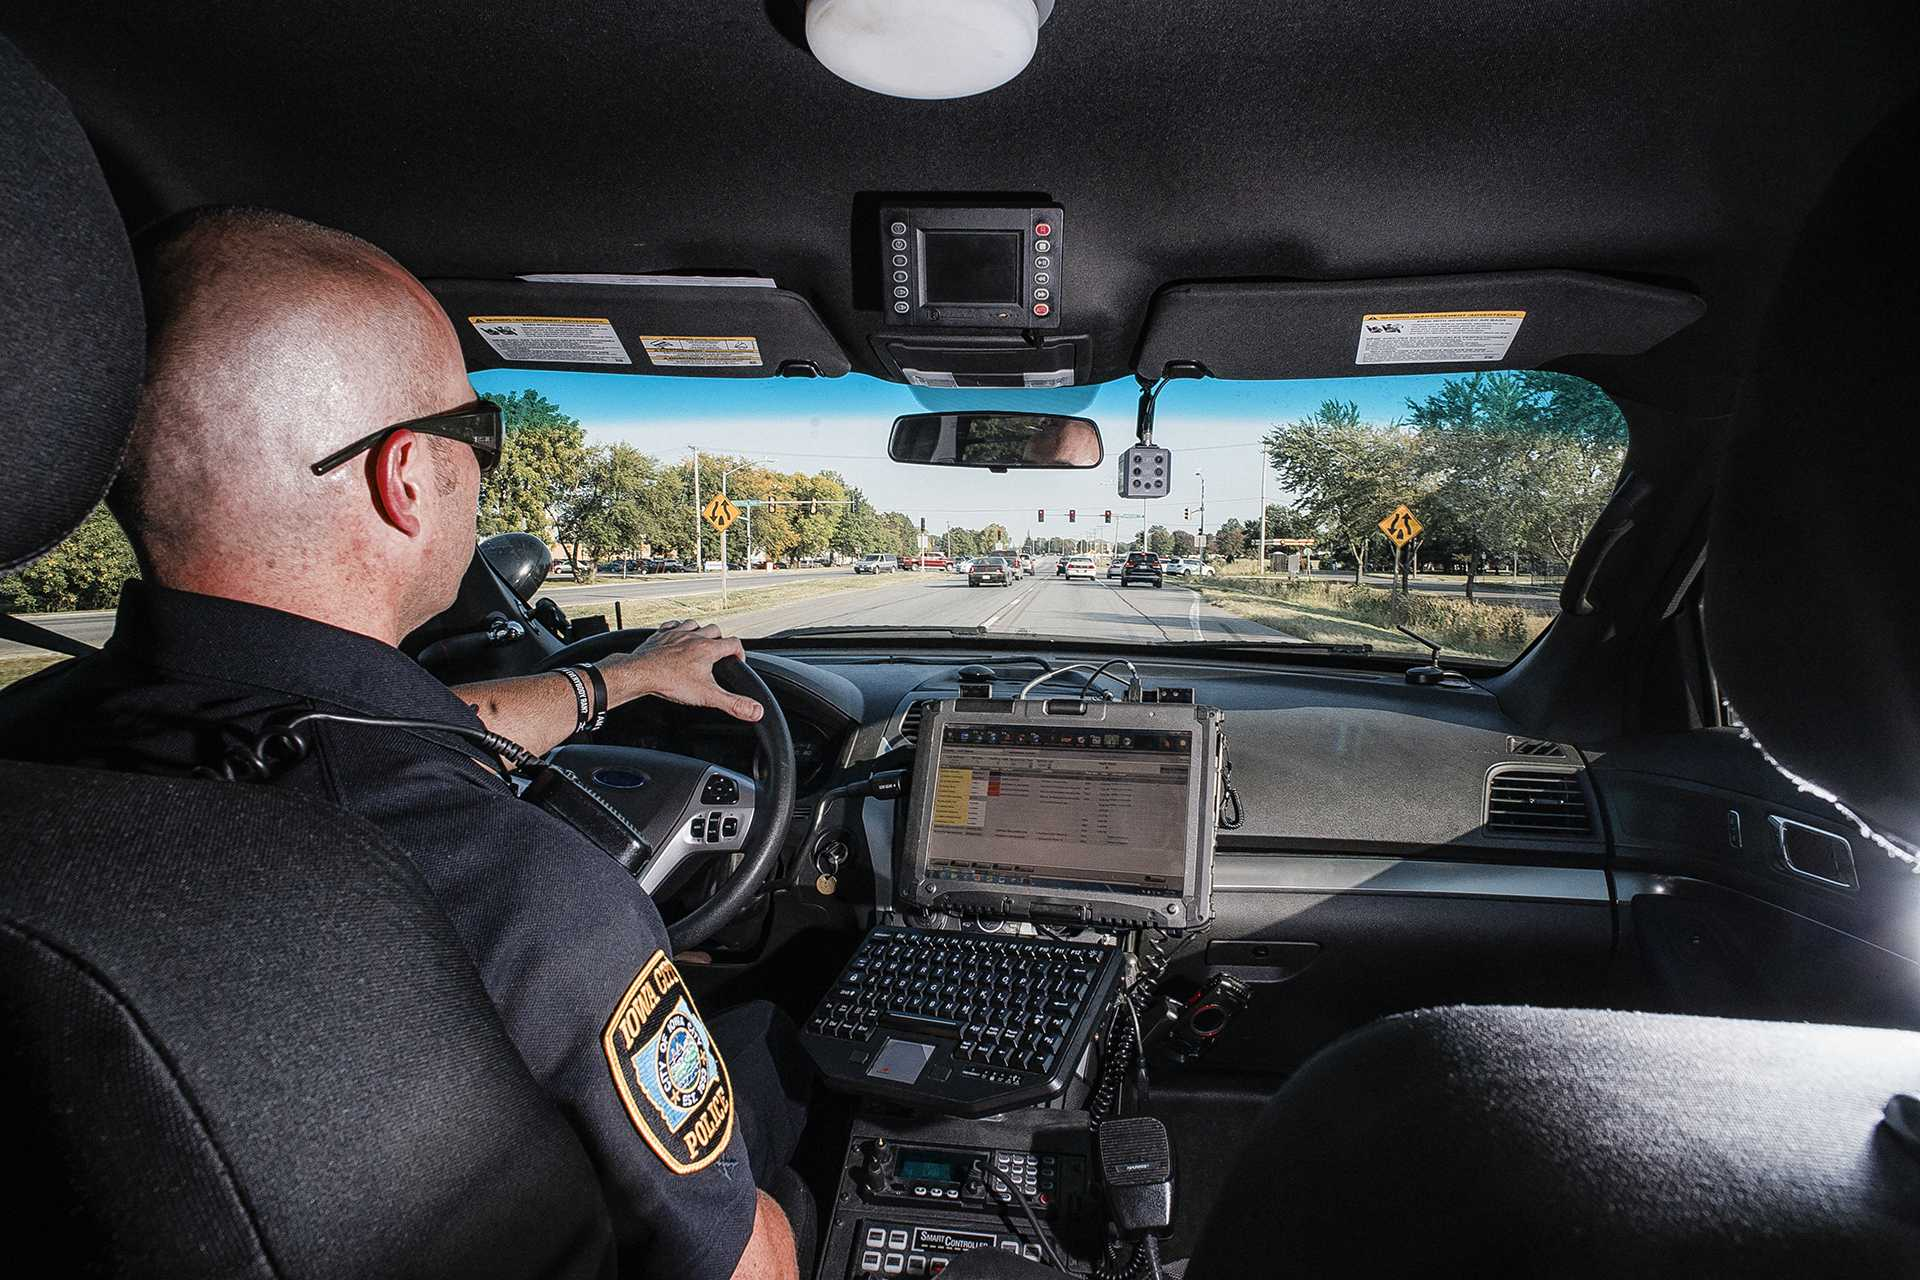 Sgt. Derek Frank of the Iowa City Police Department patrols on Highway 6 on Wednesday, Sept. 13, 2017. Sgt. Frank has been serving with the ICPD for 19 years. (James Year/The Daily Iowan)